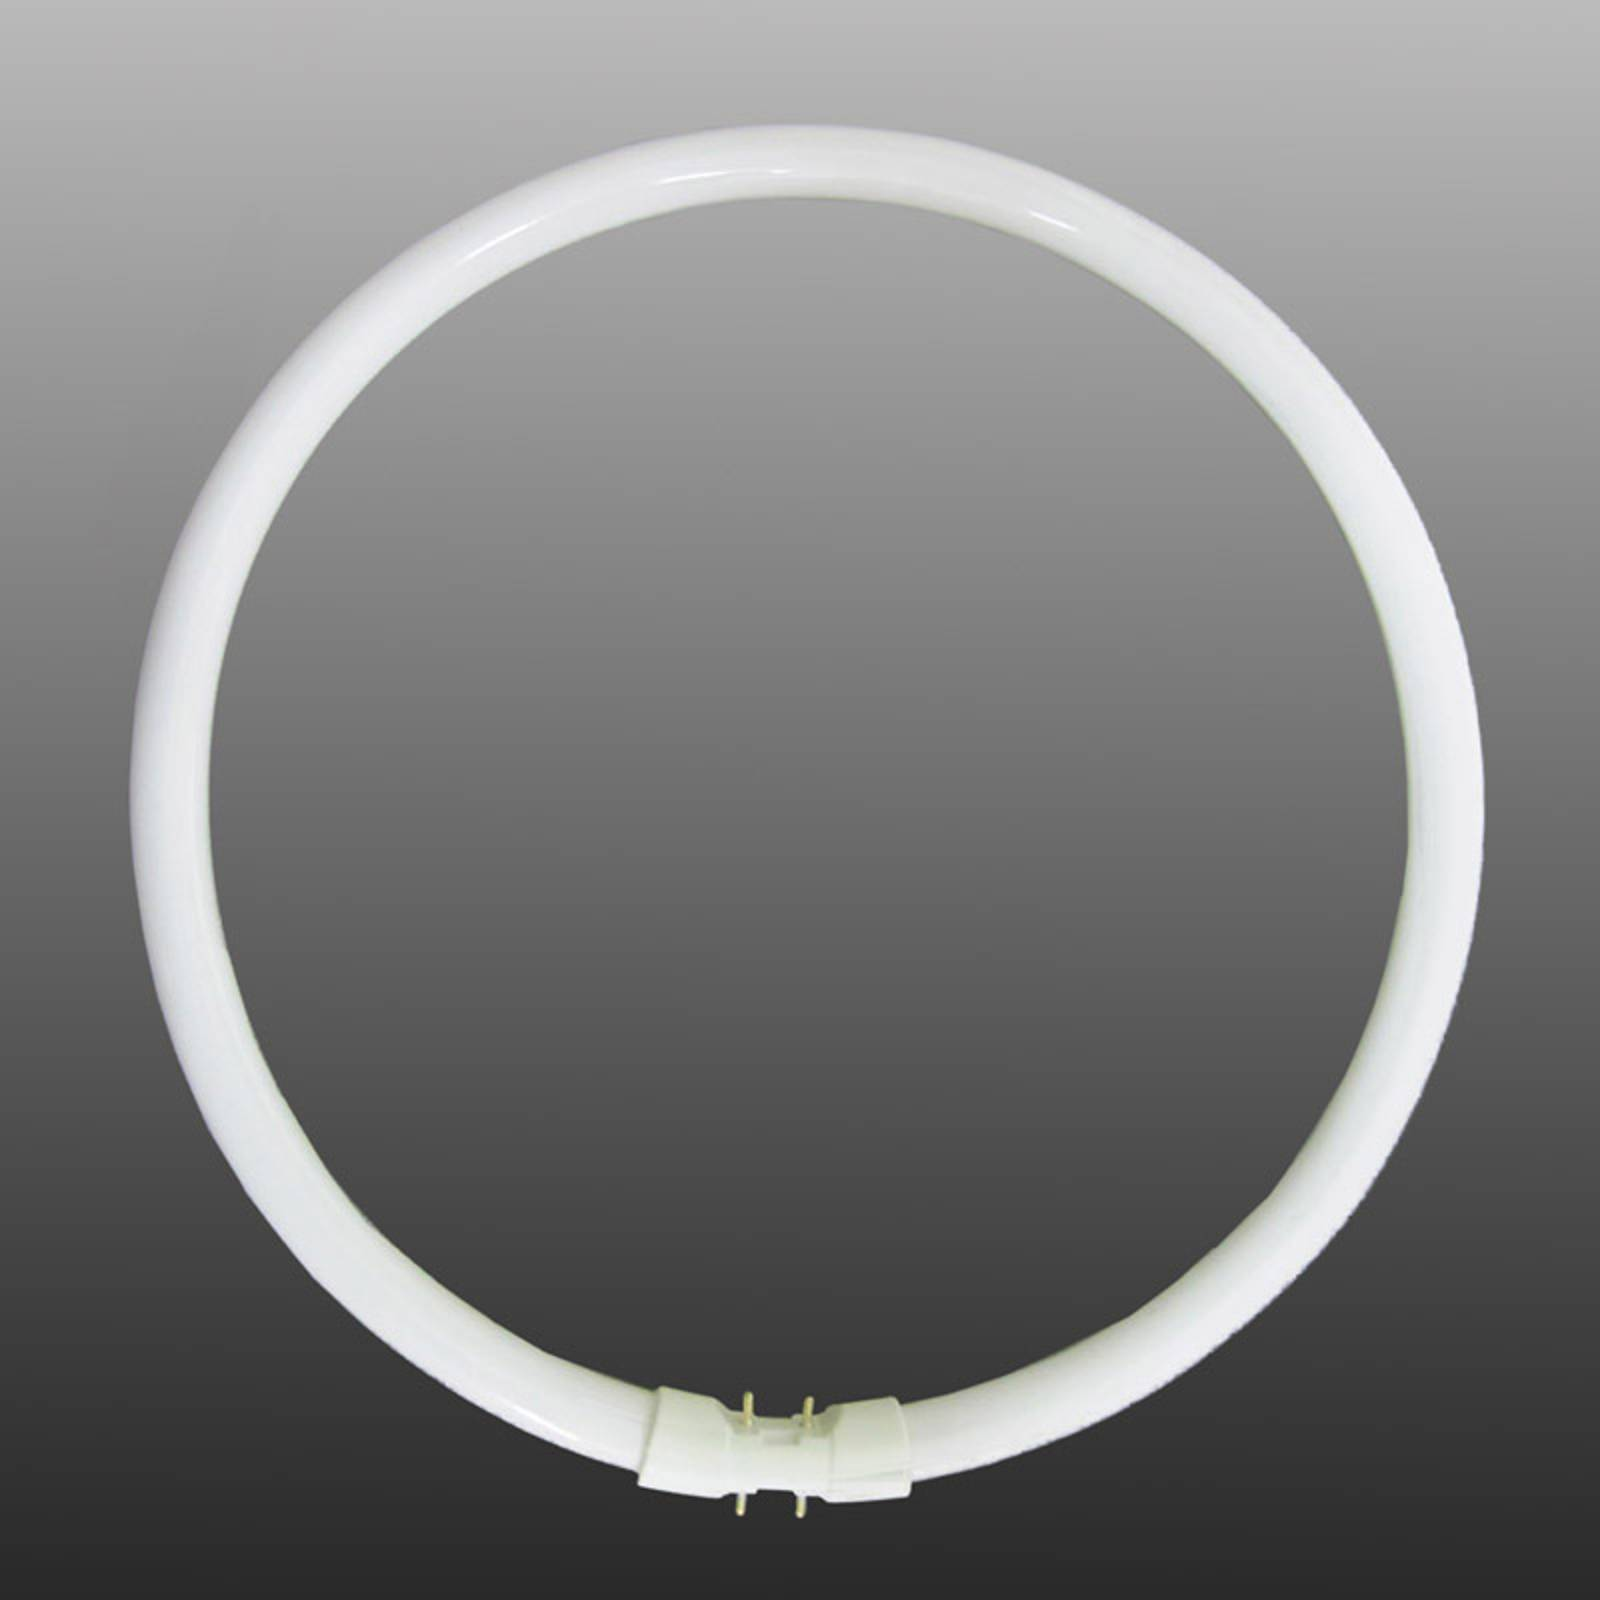 2GX13 T5 22 W fluorescent ring, warm white from Stylvania